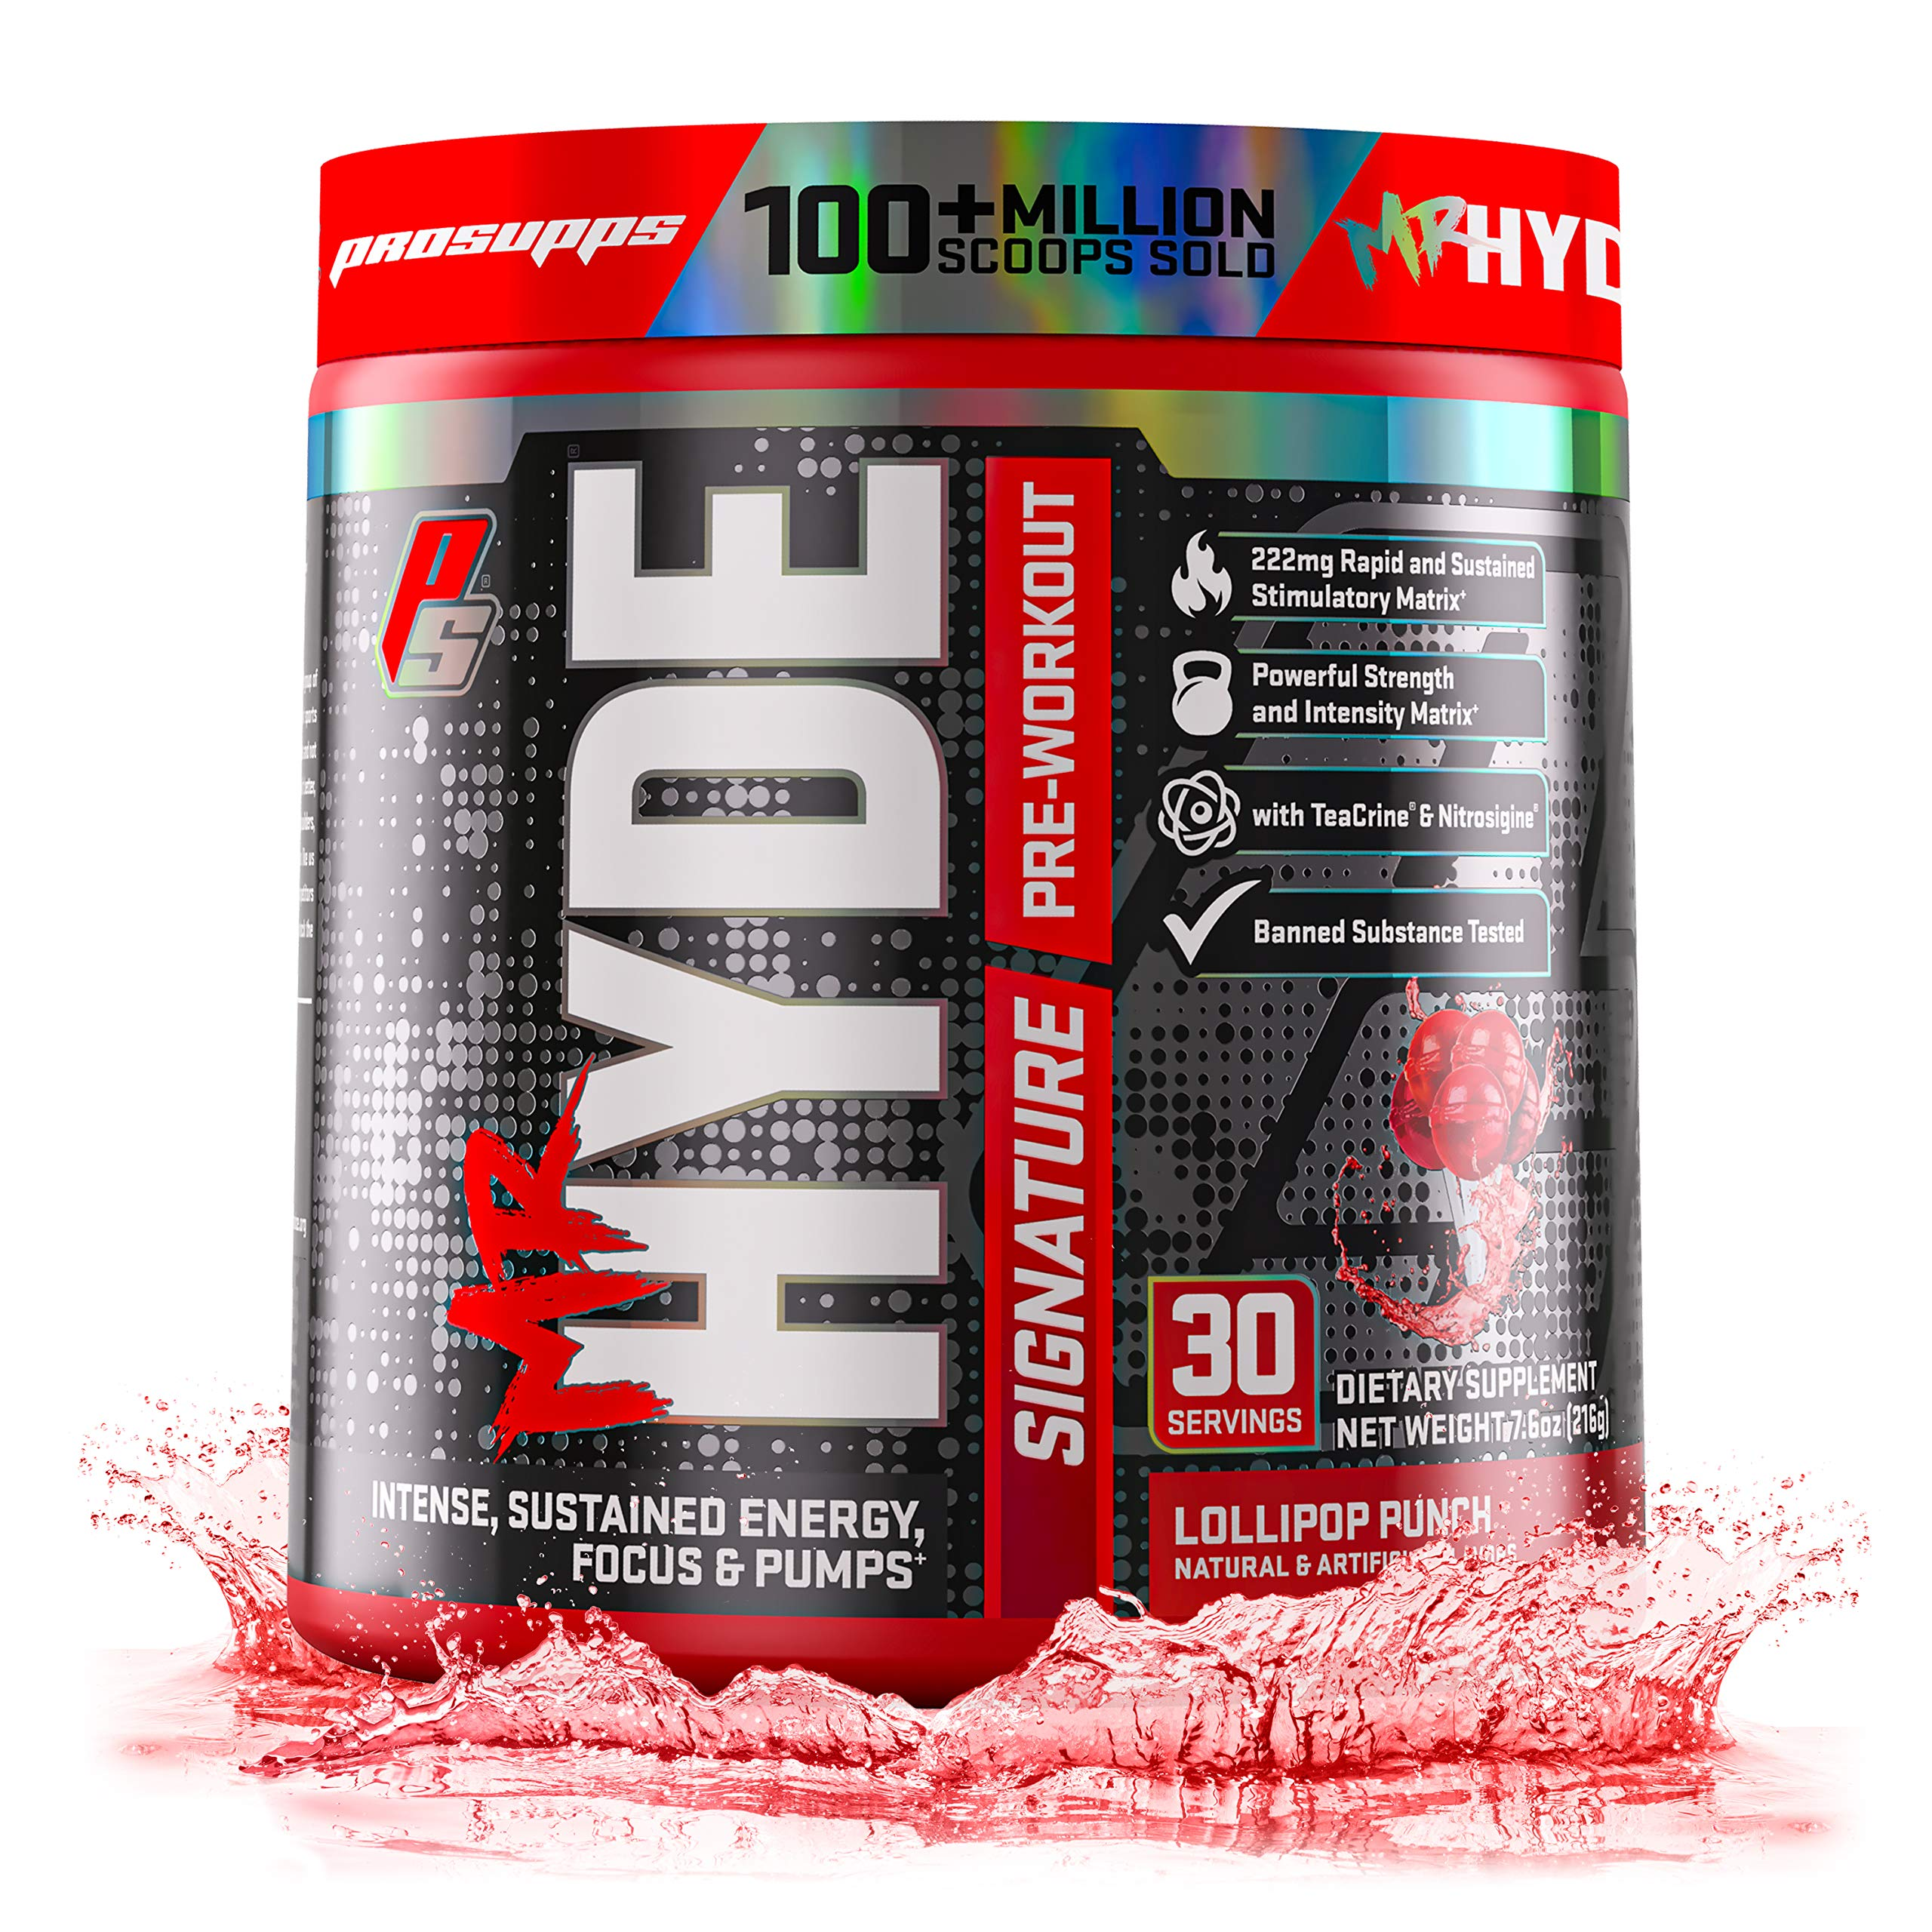 ProSupps Mr. Hyde Signature Series Pre-Workout Energy & Nitric Oxide Boosting Drink - Sustained Energy, Focus & Pumps with Beta Alanine, Creatine, Nitrosigine & TeaCrine - 30 Servings (Lollipop Punch) by PROSUPPS